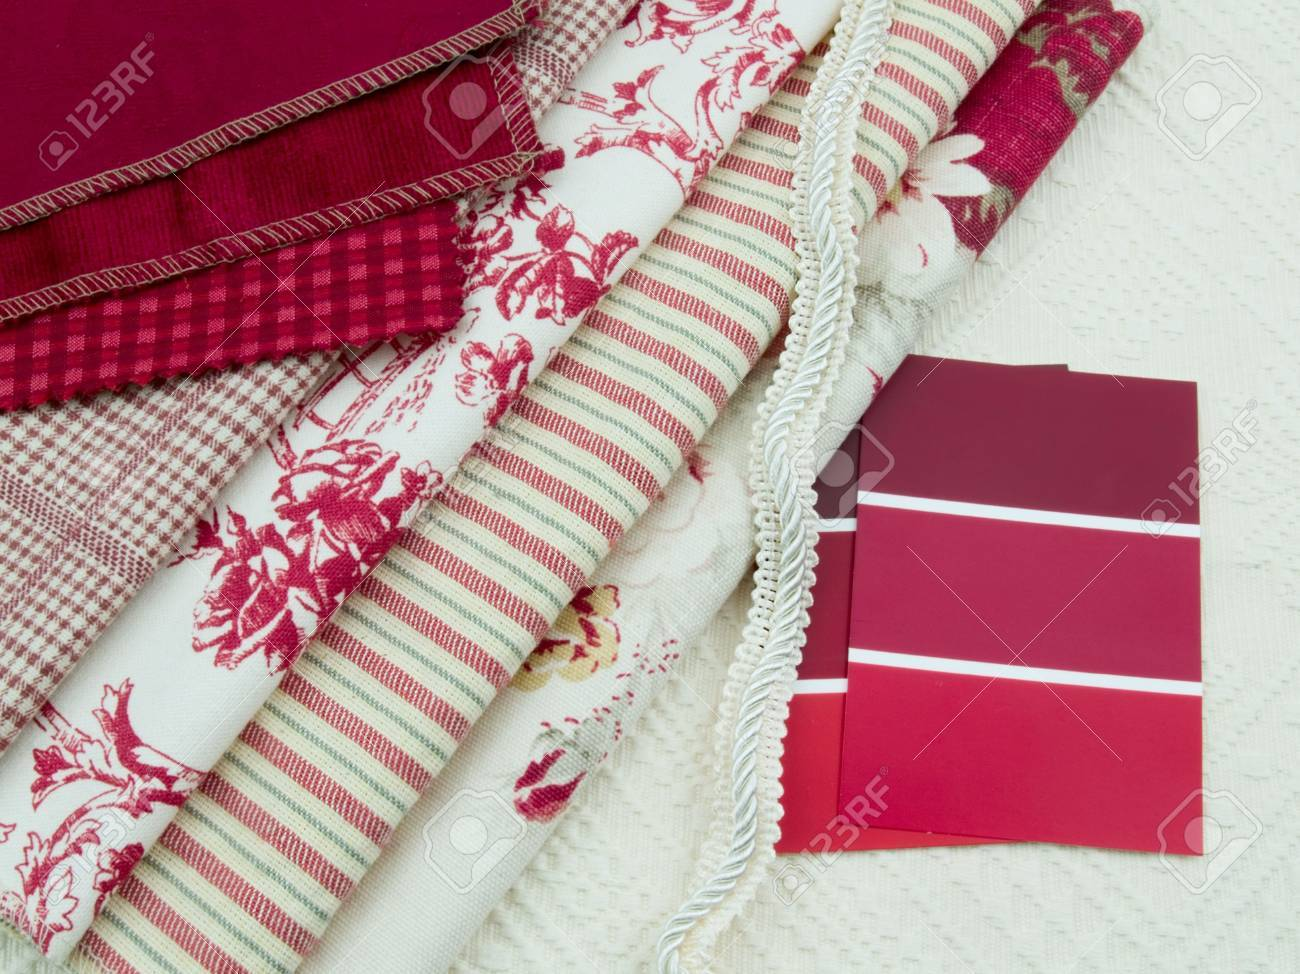 Red and white interior decoration plan color cards and textile swatches. Stock Photo - 5882808